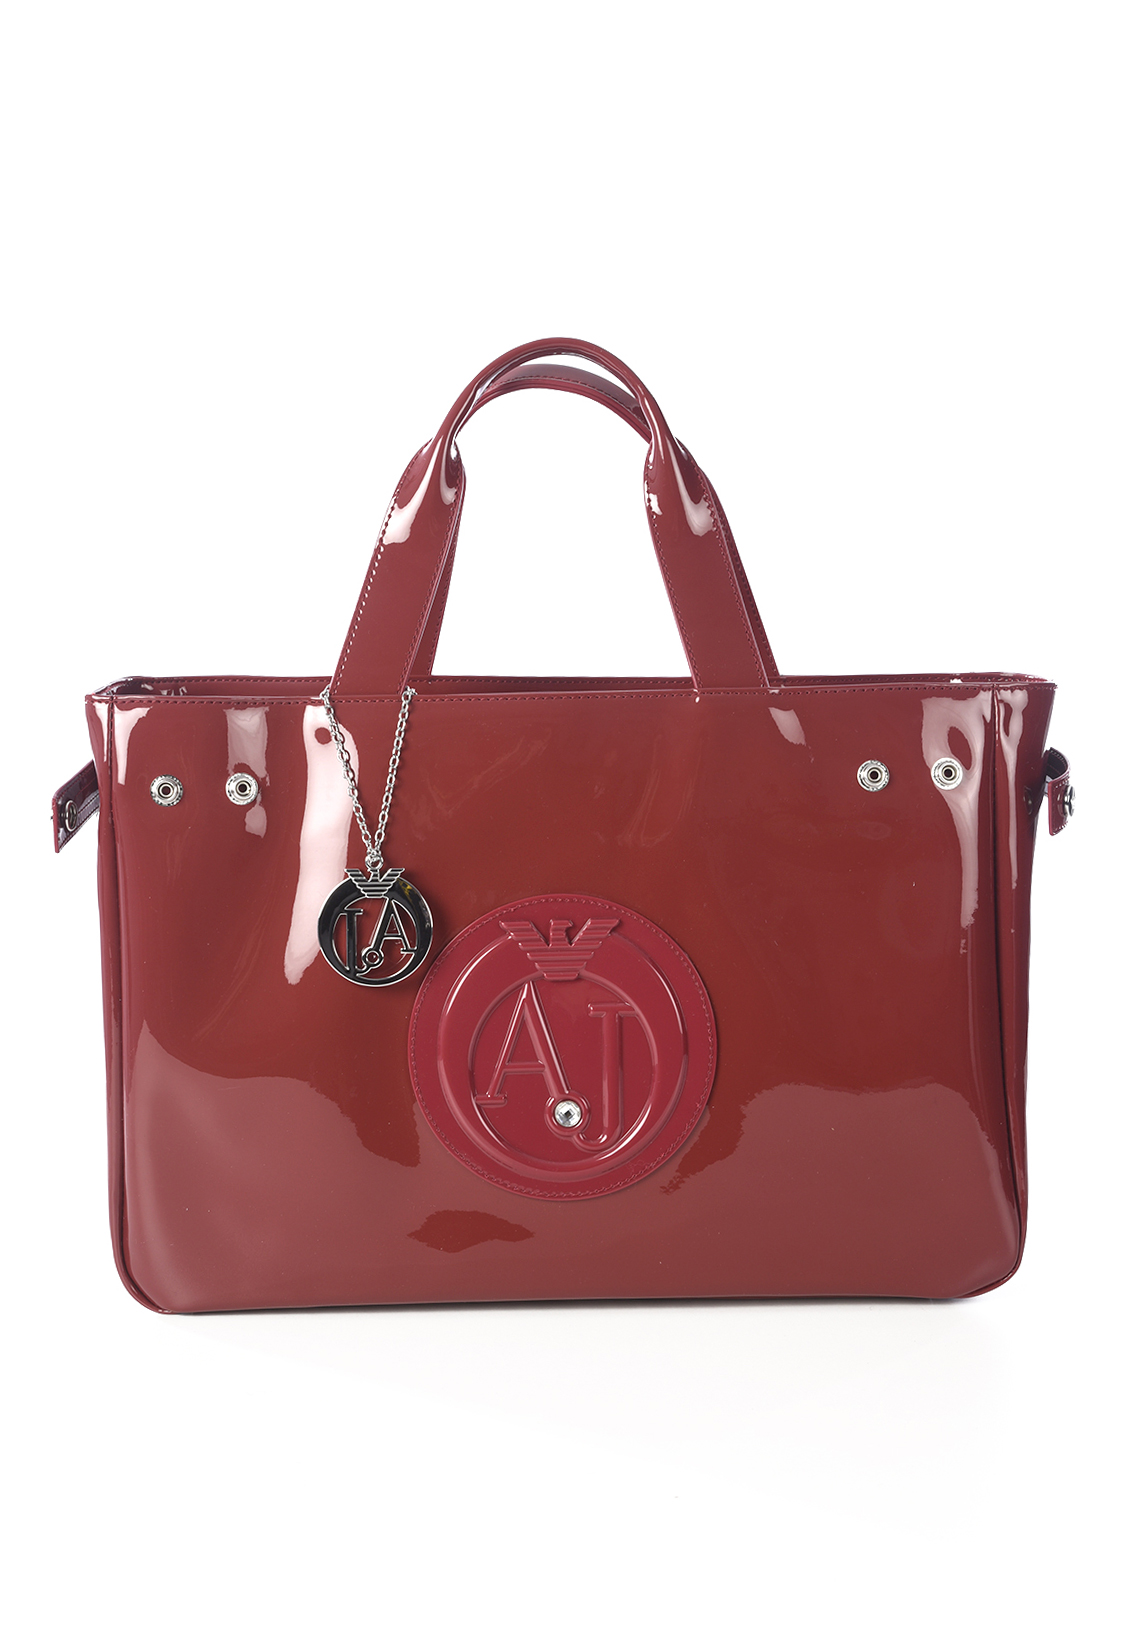 Cabas / Sacs shopping  Armani jeans 922591 CC855 00176 RED